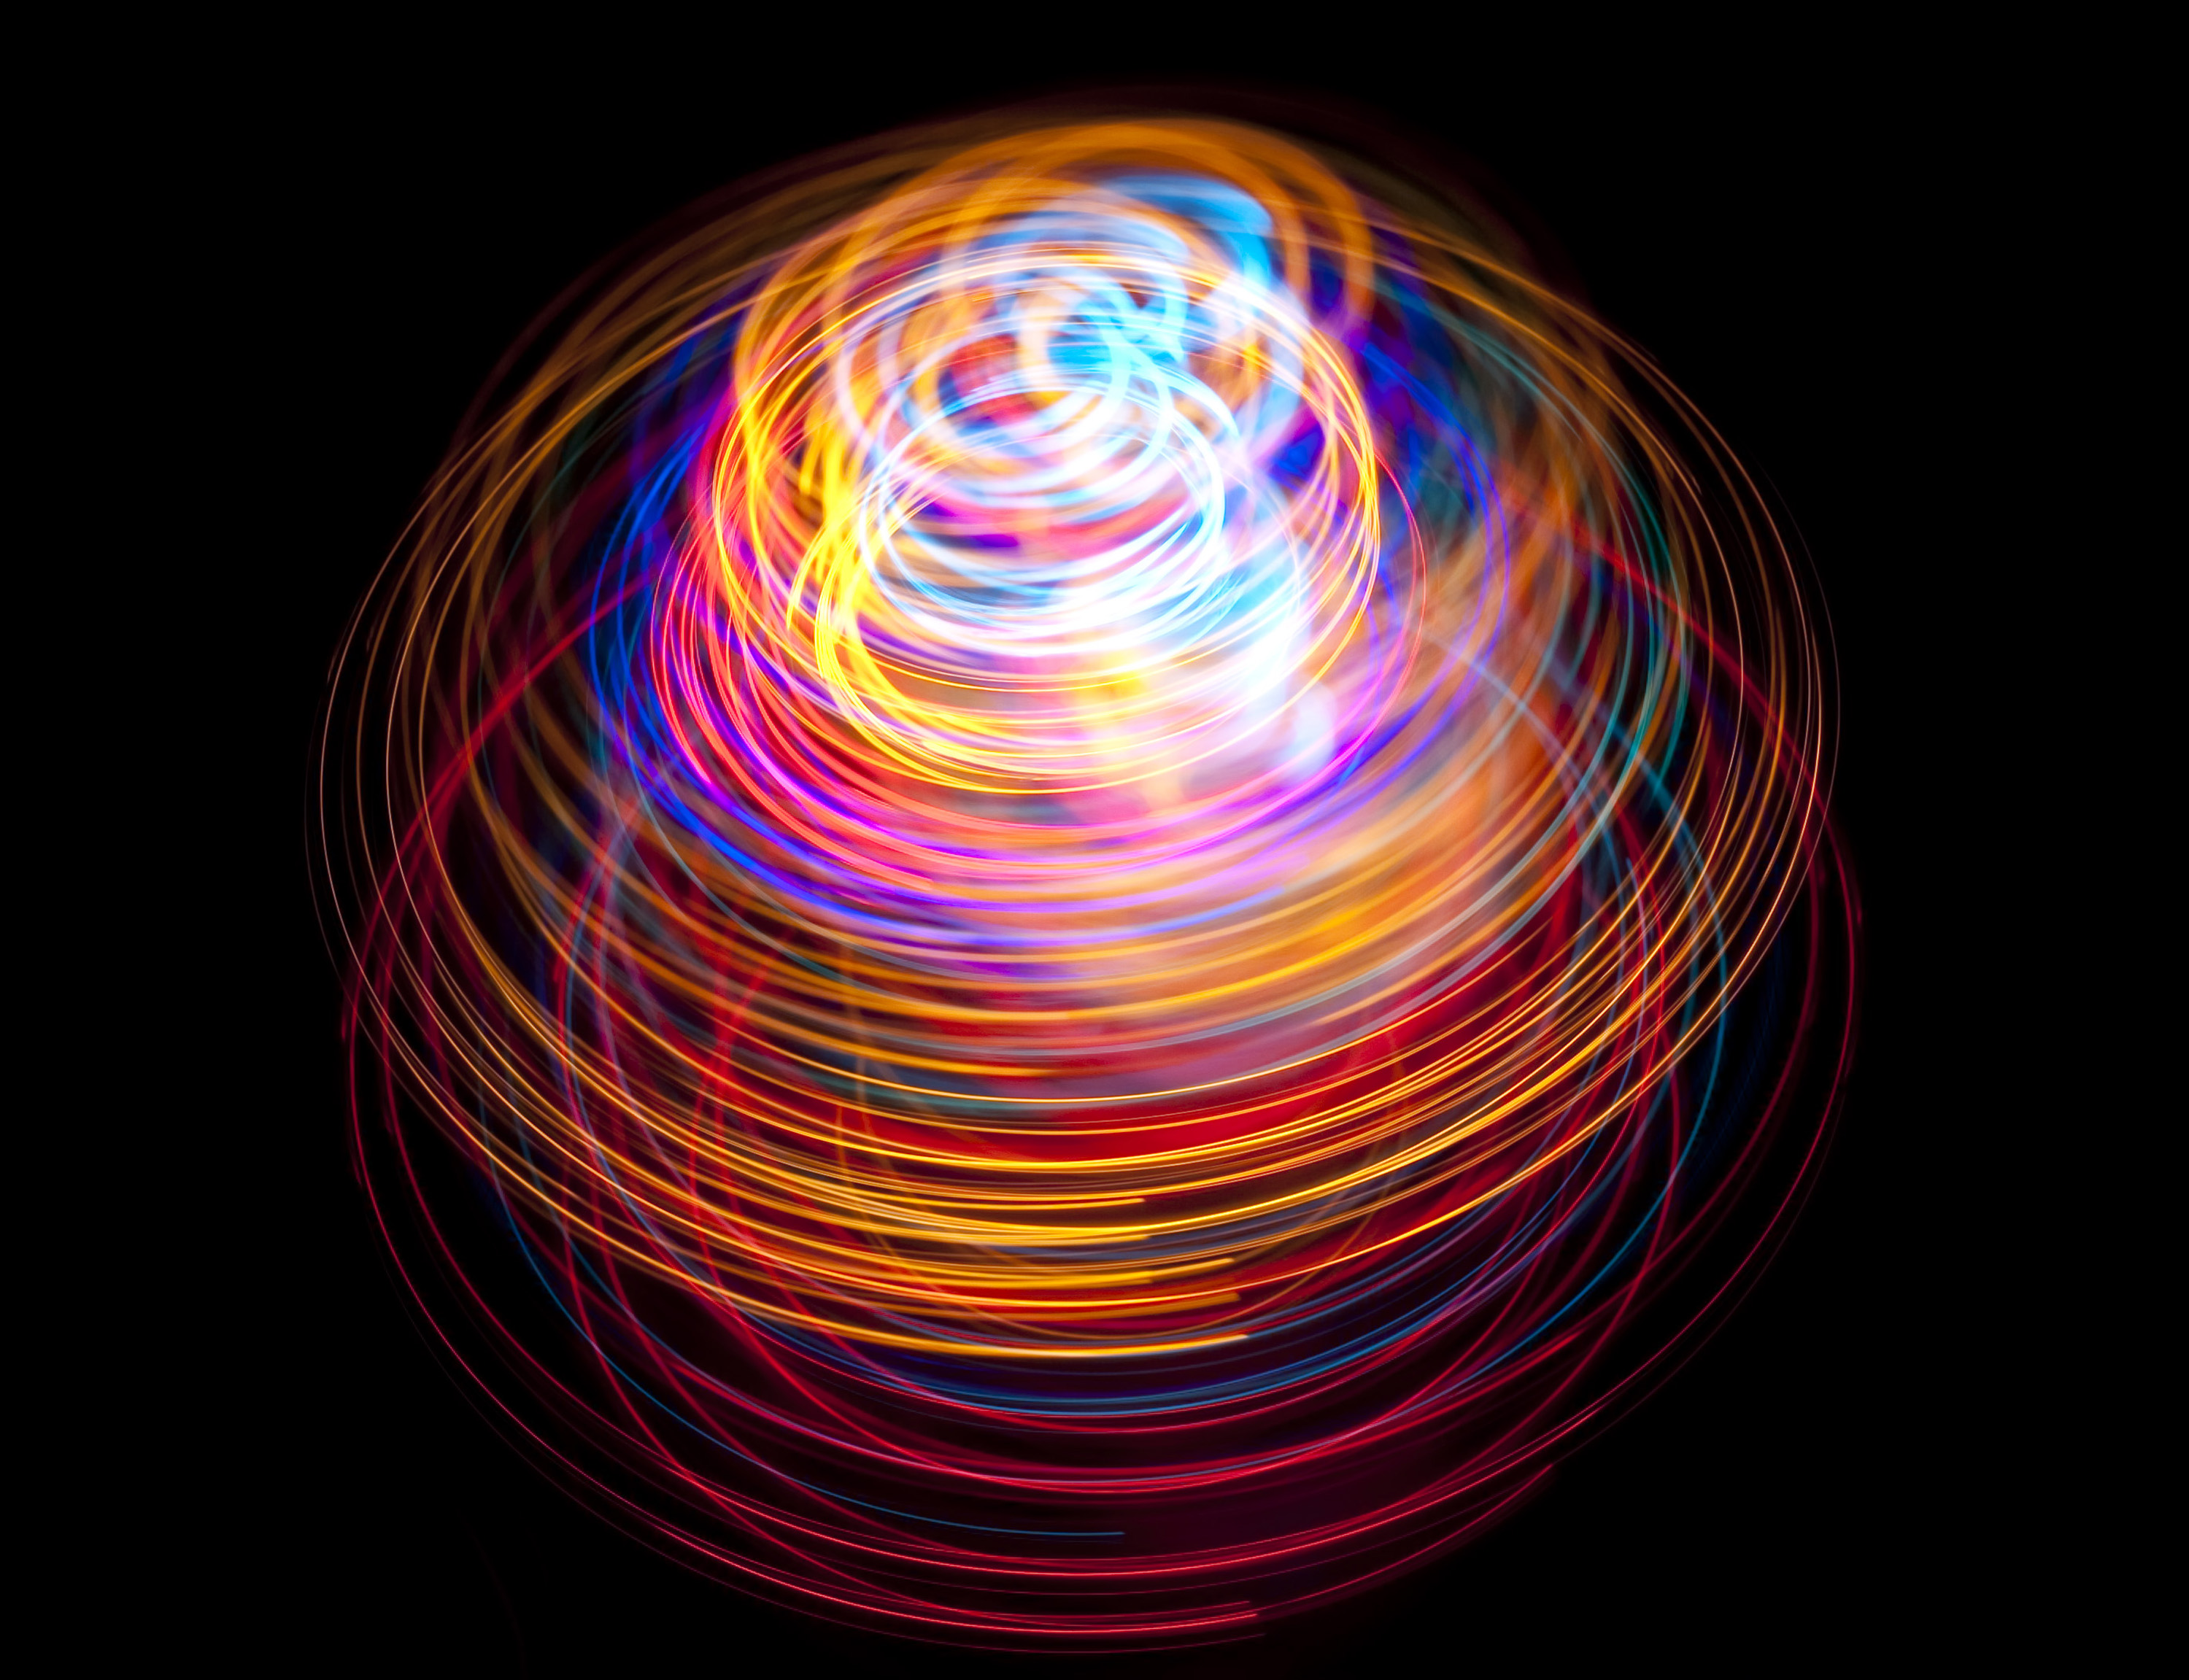 glowing colored light trails creating abstract forms and shapes